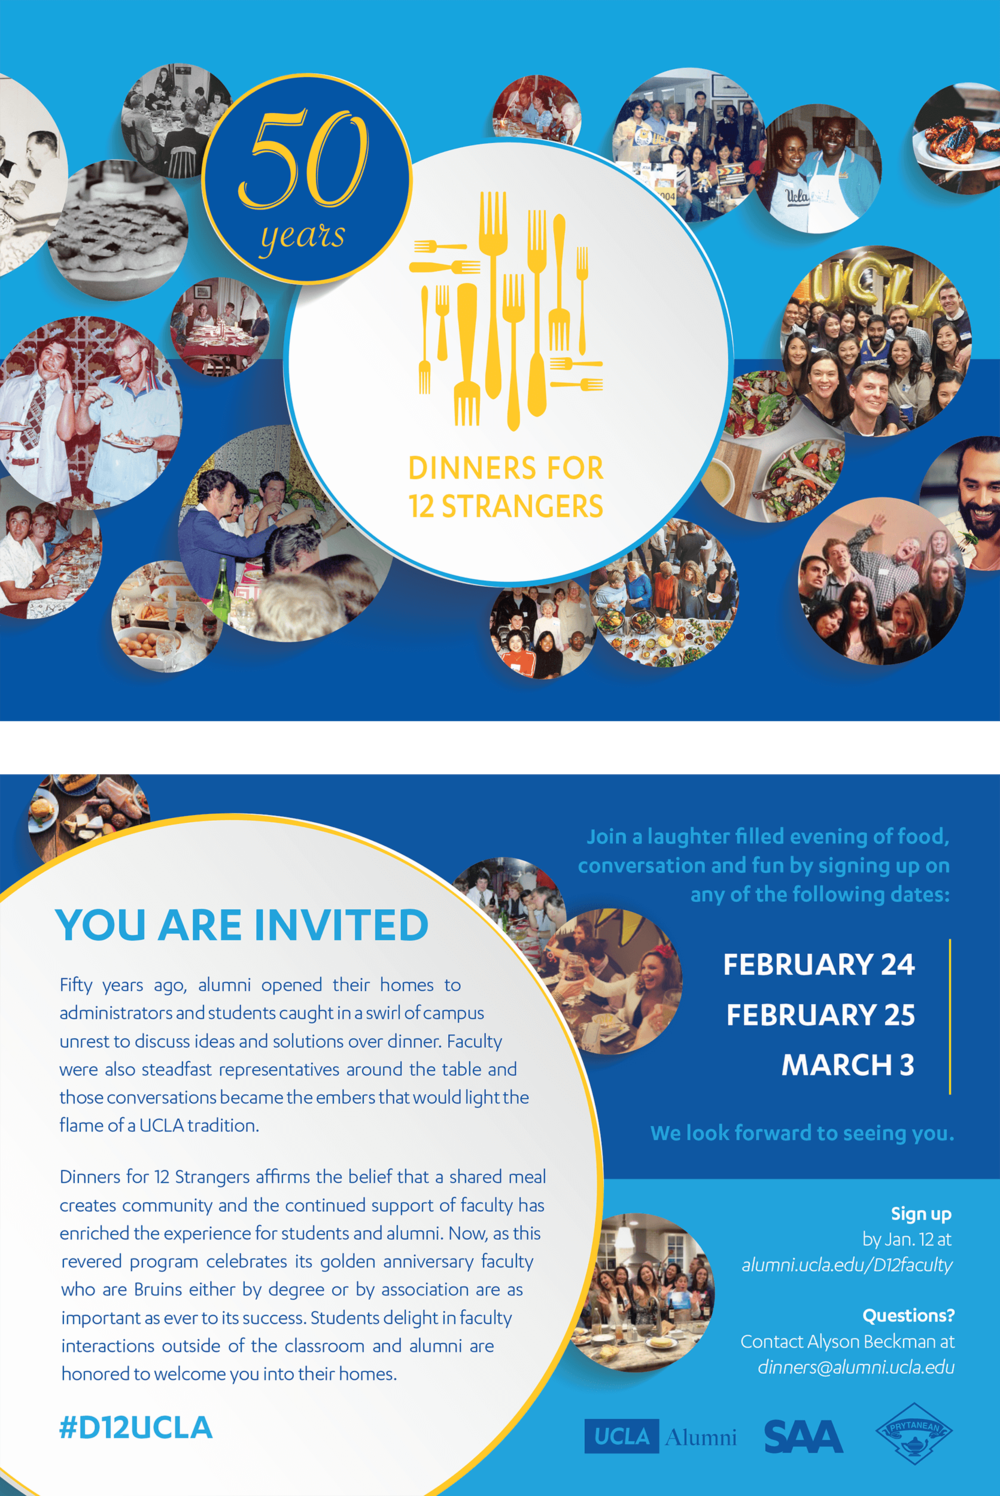 This faculty and student flyer was adapted into emails, mailers, and event collateral for the 50th anniversary of Dinners for 12 Strangers.